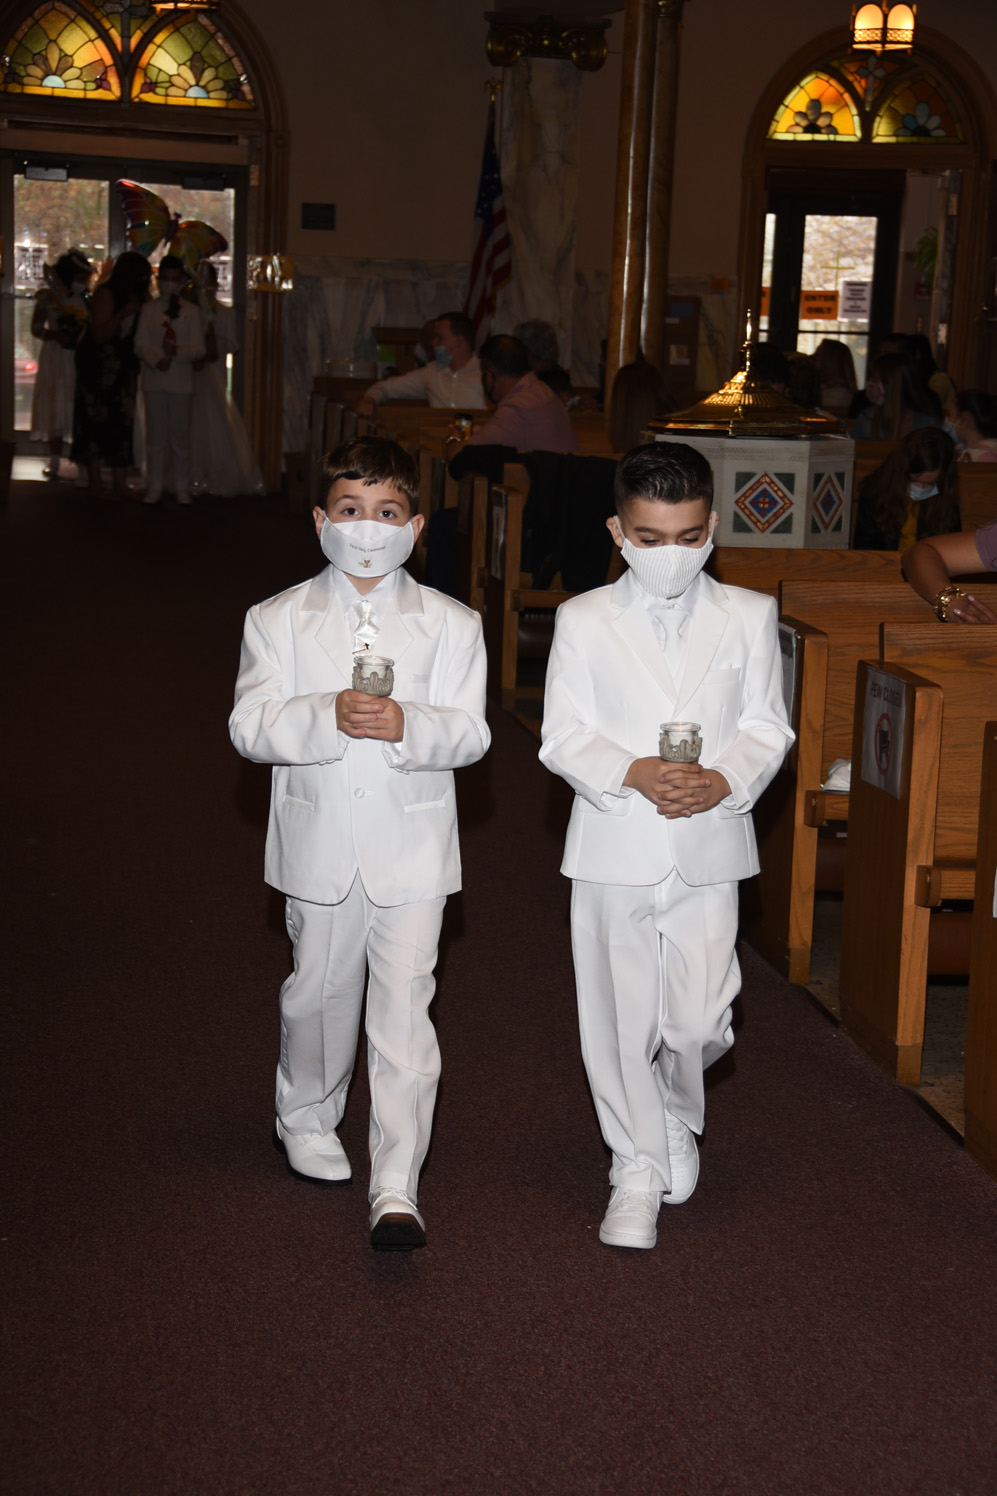 FIRST-COMMUNION-MAY-2-2021-1001001188